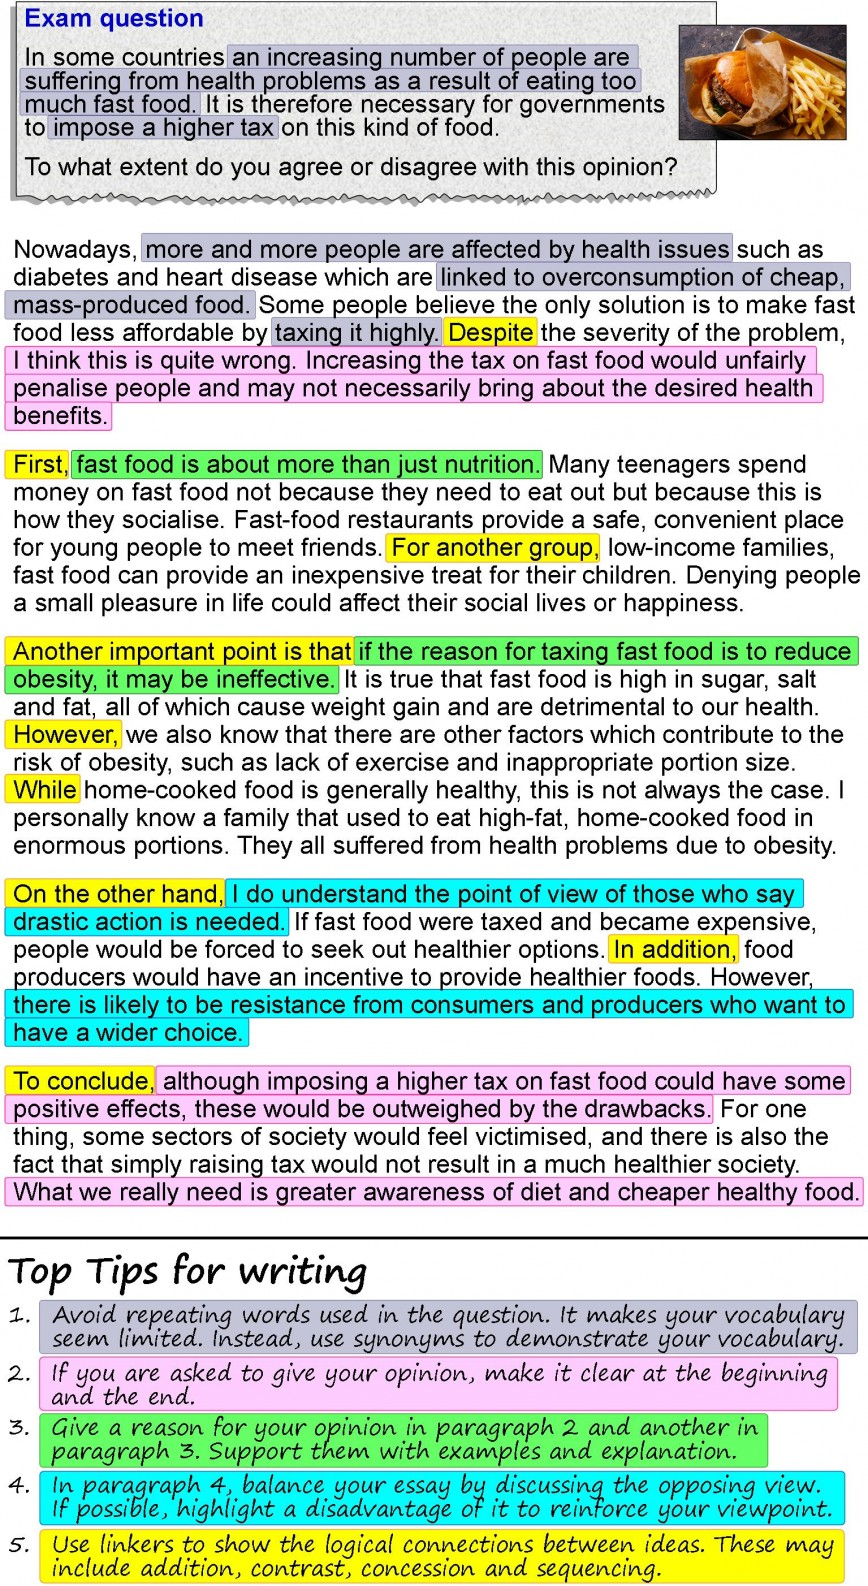 001 Opinion Essay About Fast Food Example An 4 Unbelievable Short British Council Restaurants 868